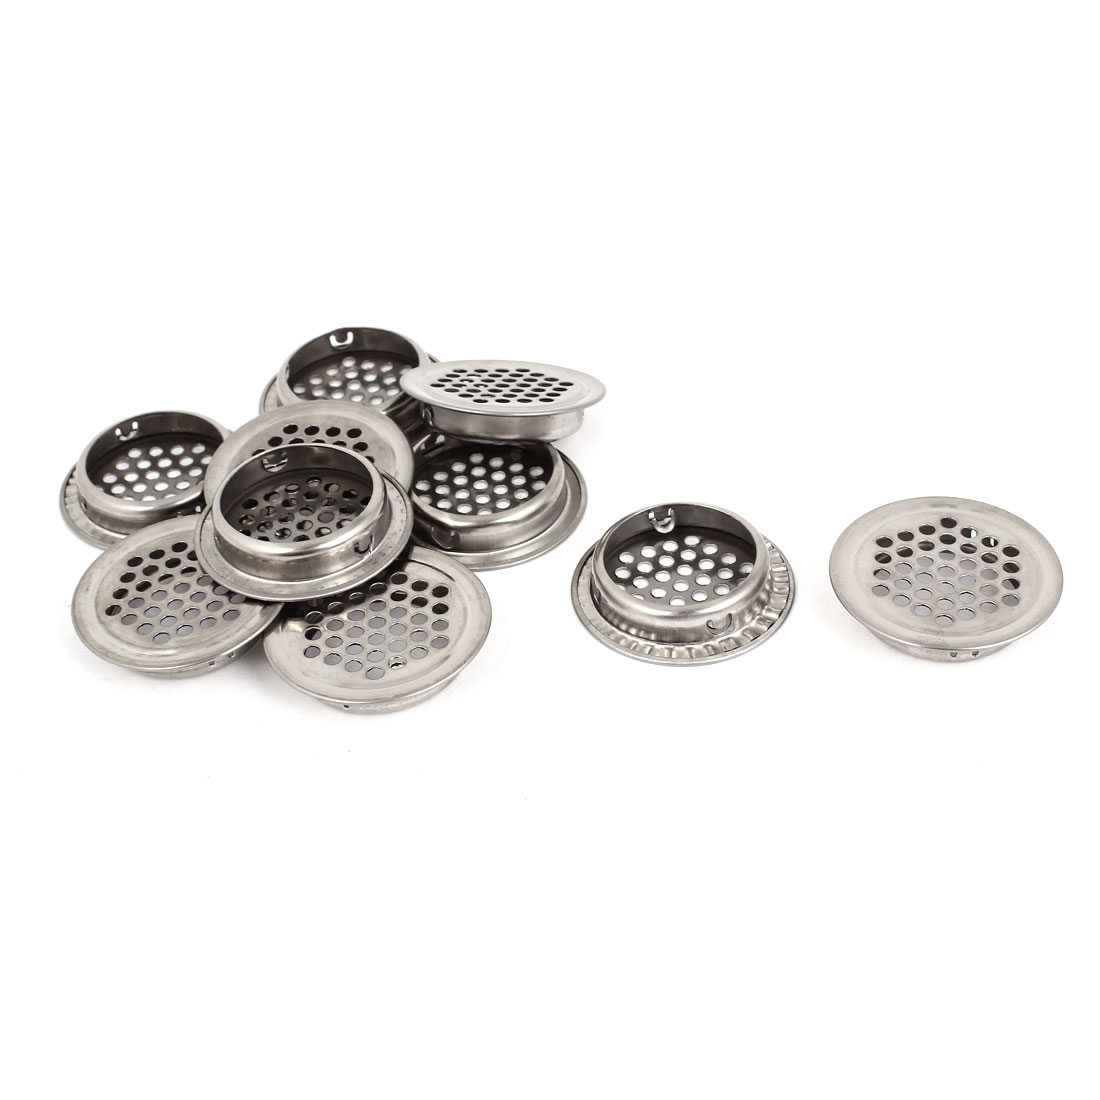 10pcs 35mm Diameter Round Stainless Steel Mesh Cabinet Air Vent Louver Cover